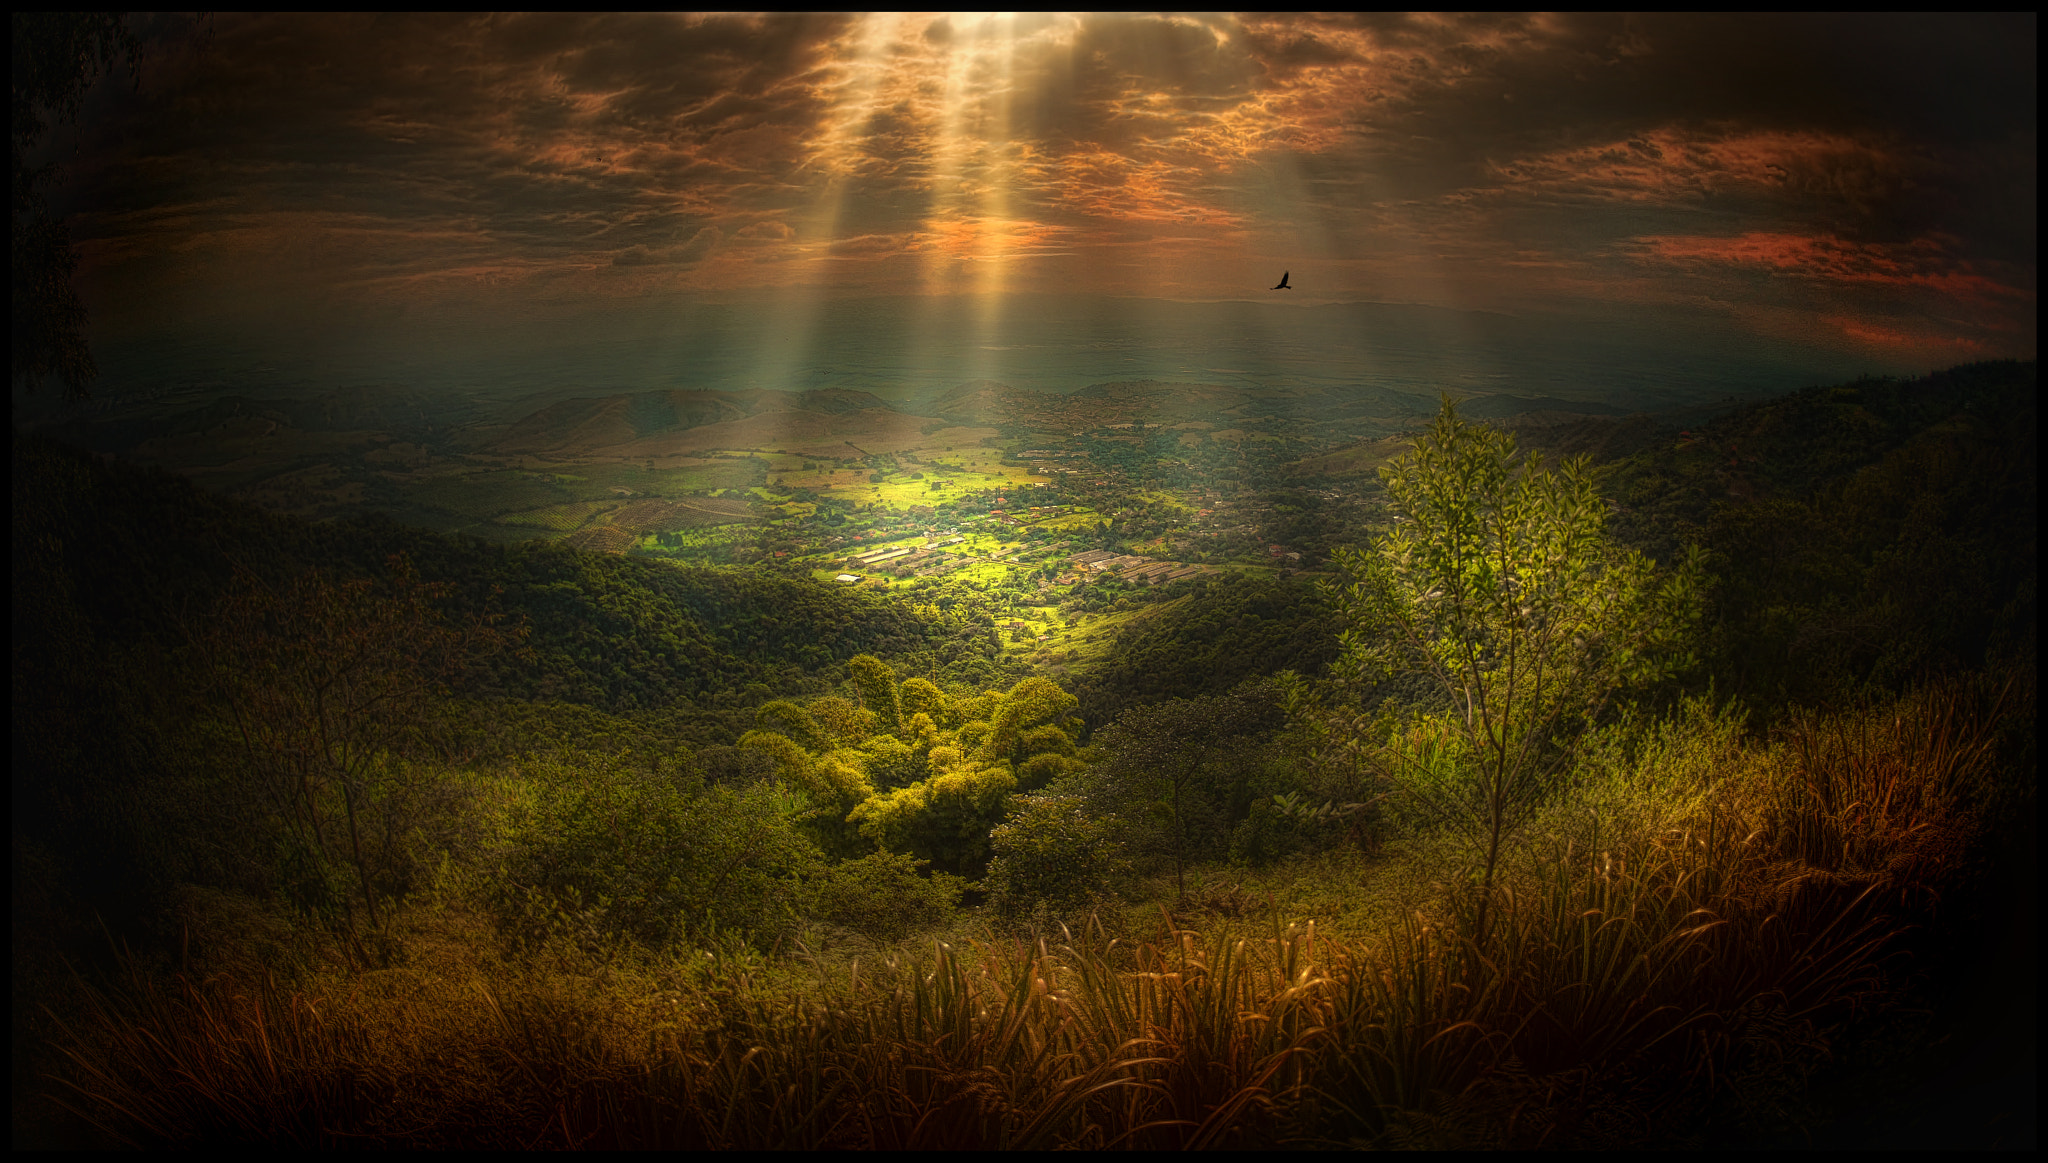 Photograph *** by jose arley agudelo on 500px